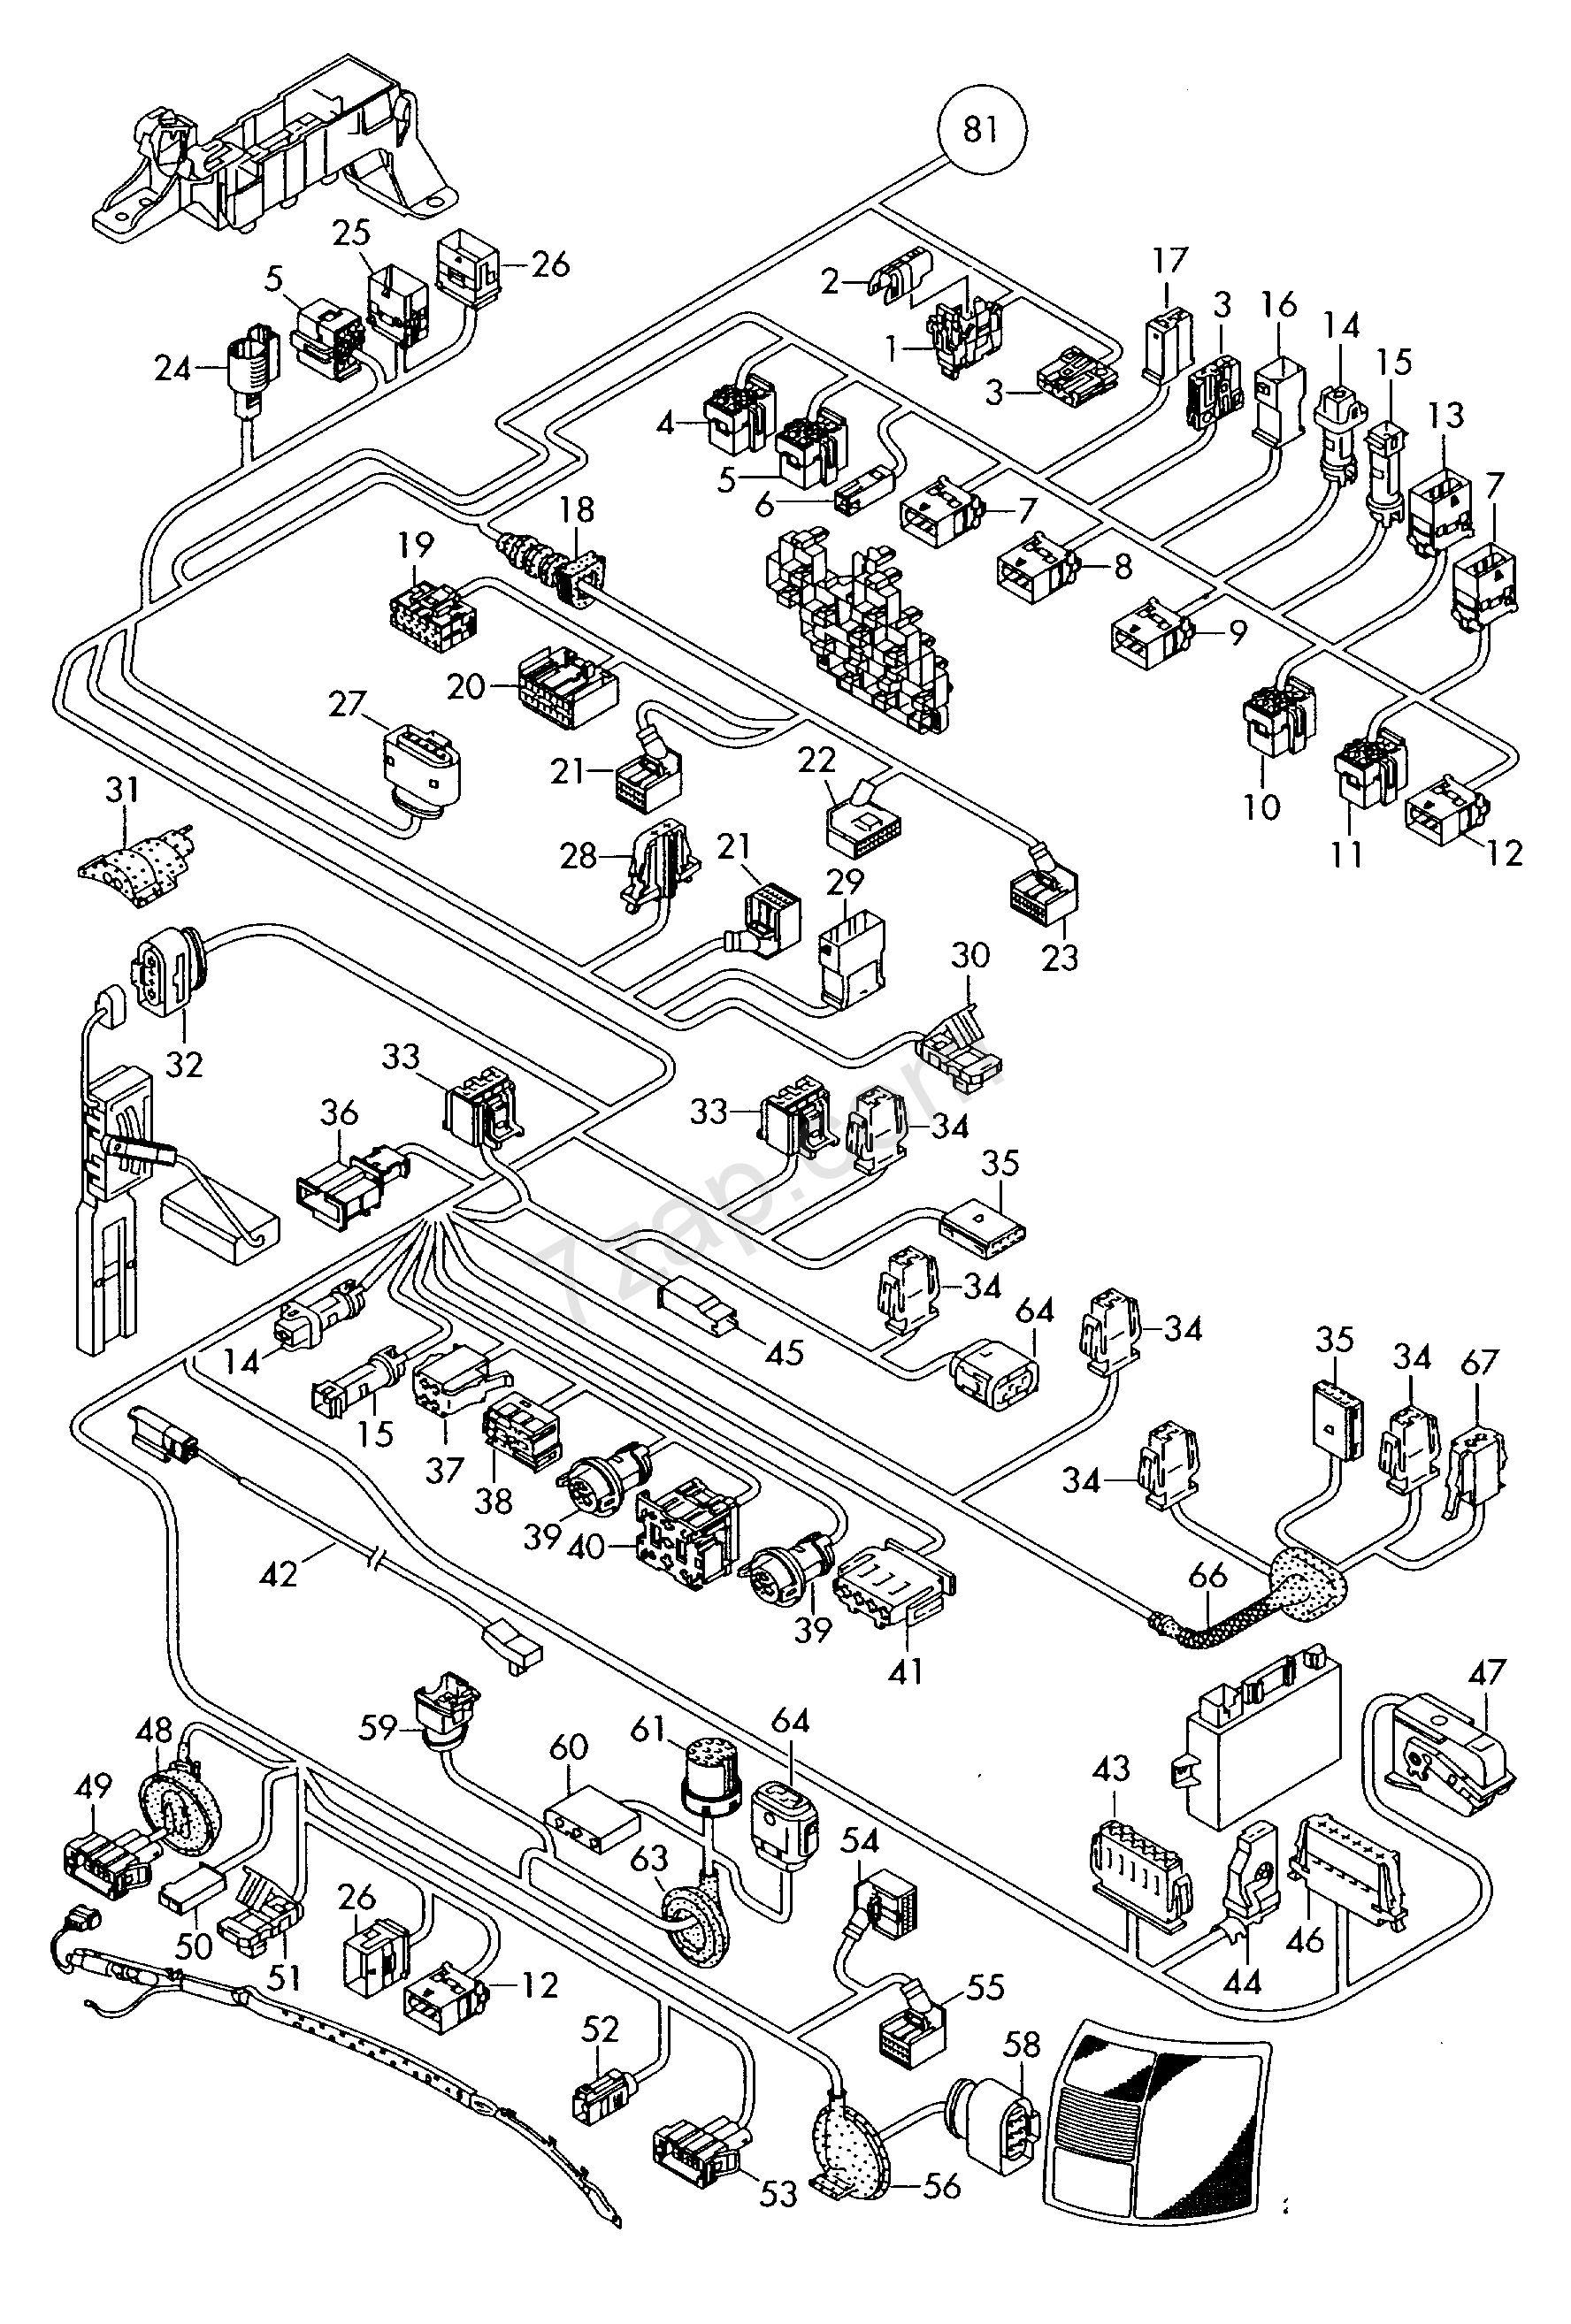 Magnificent e46 325i vacuum diagram embellishment electrical